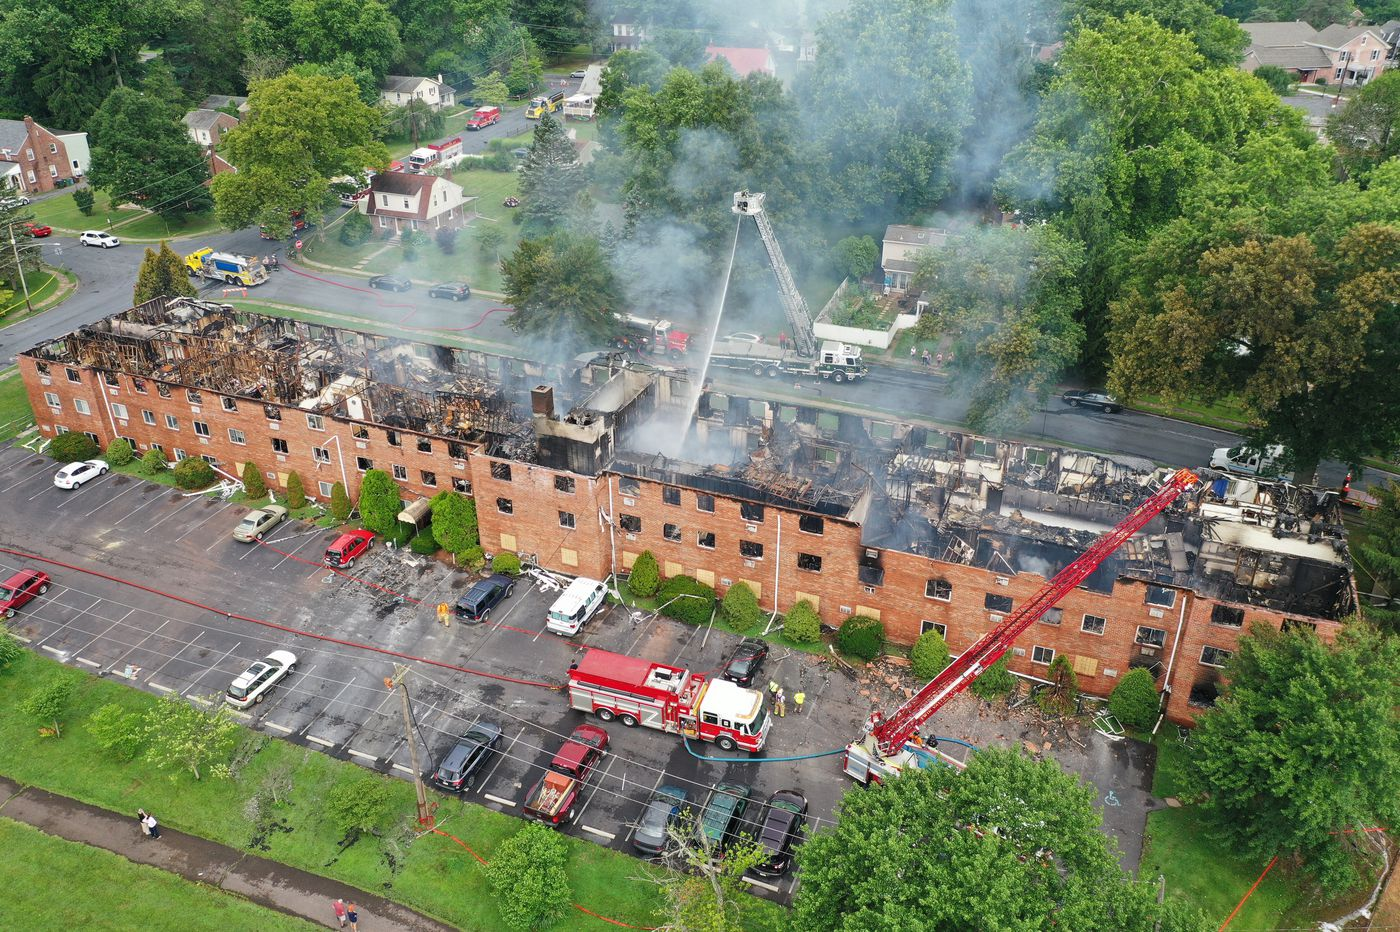 Major fire destroys apartment complex in Chester County